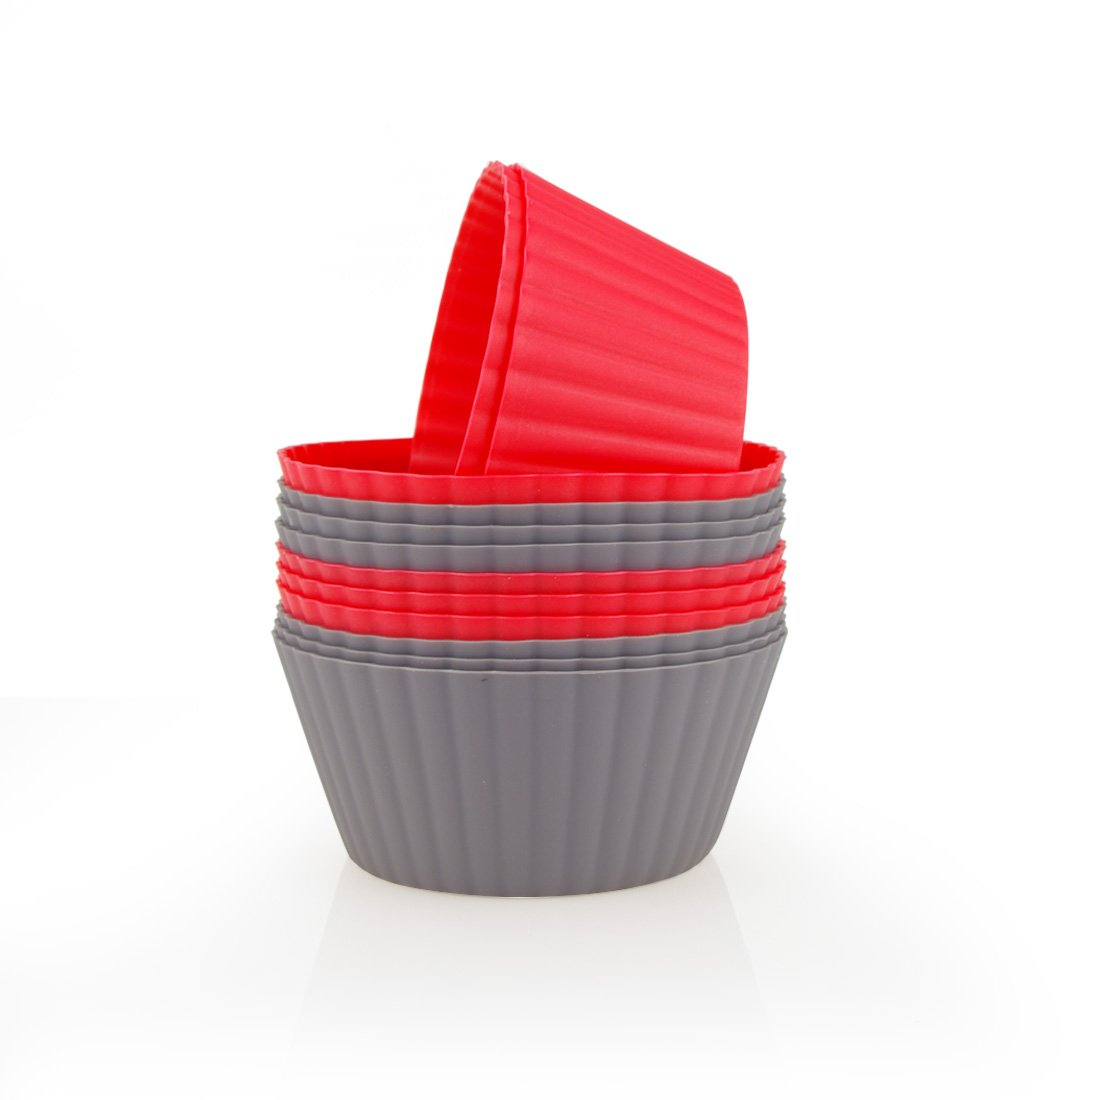 Mirenlife 12 Pack Reusable Nonstick Jumbo Silicone Baking Cups, Cupcake and Muffin Liners, 3.8 Inch Large Size, in Storage Container, Red and Dark Gray Colors, Round